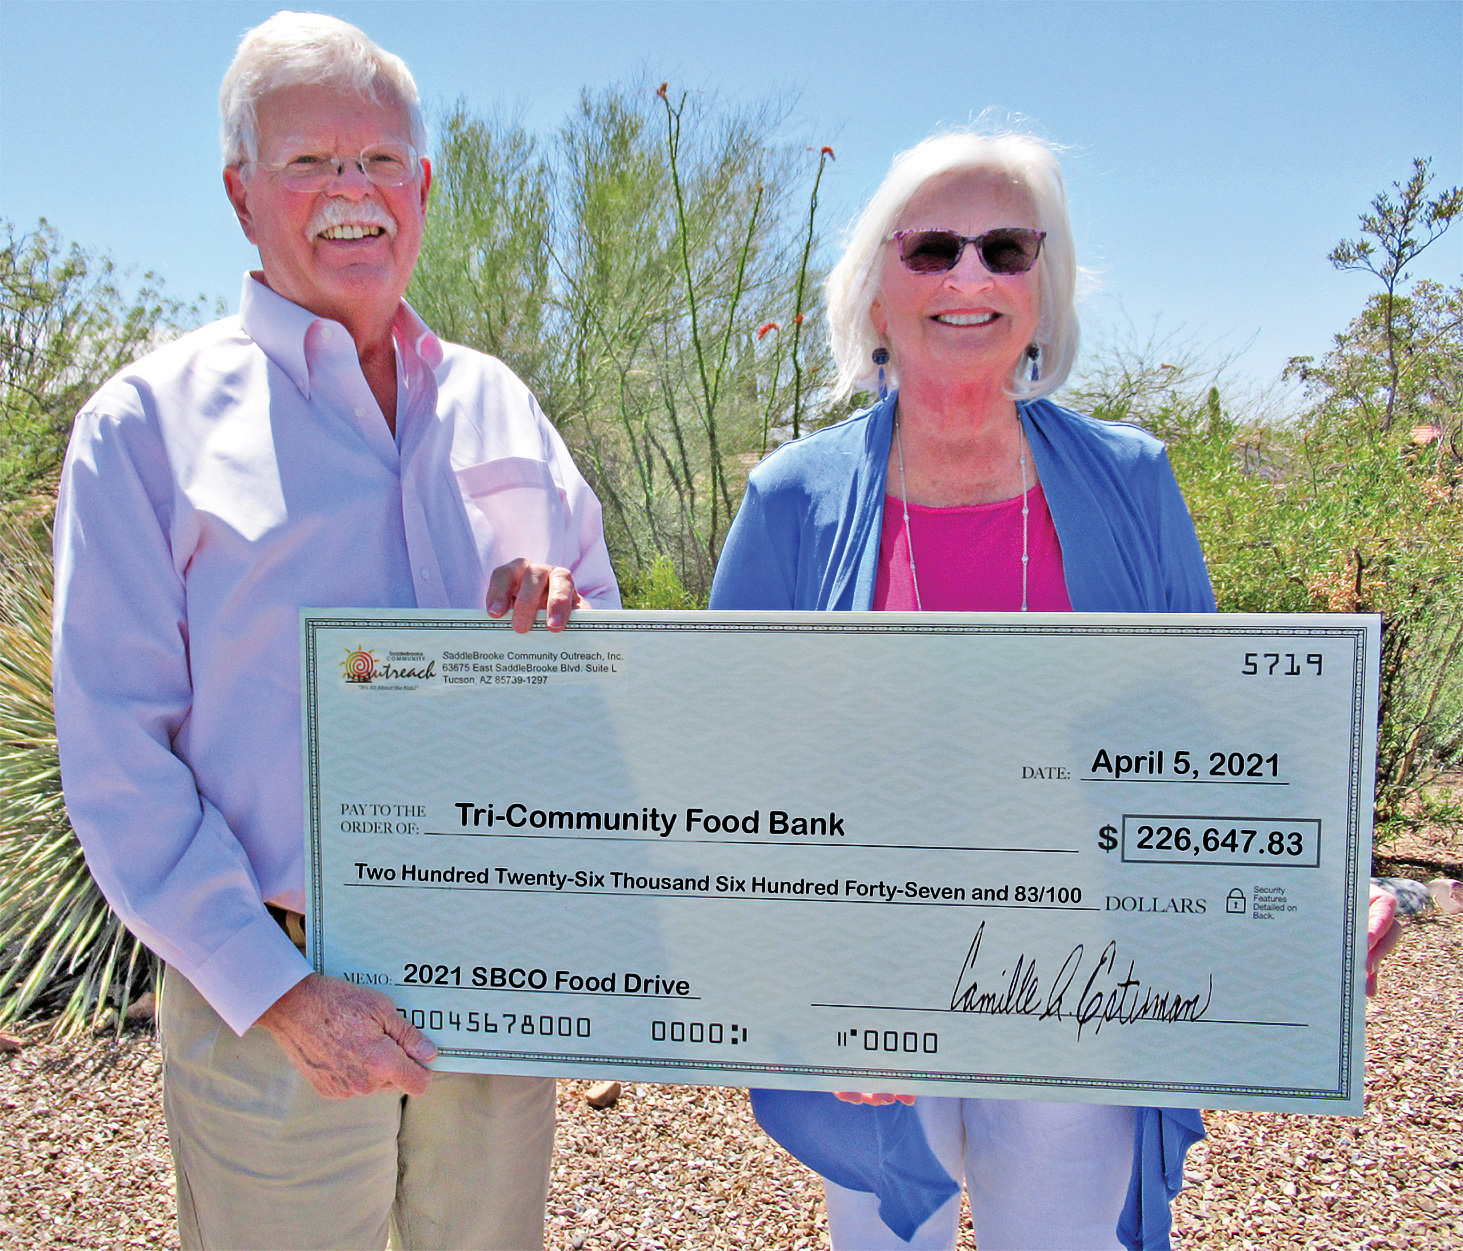 Steve Groth, SBCO president, presents a check for the $226,647 raised by the SBCO Food Drive to Tri-Community Food Bank chairperson, Cynthia Chevalley.